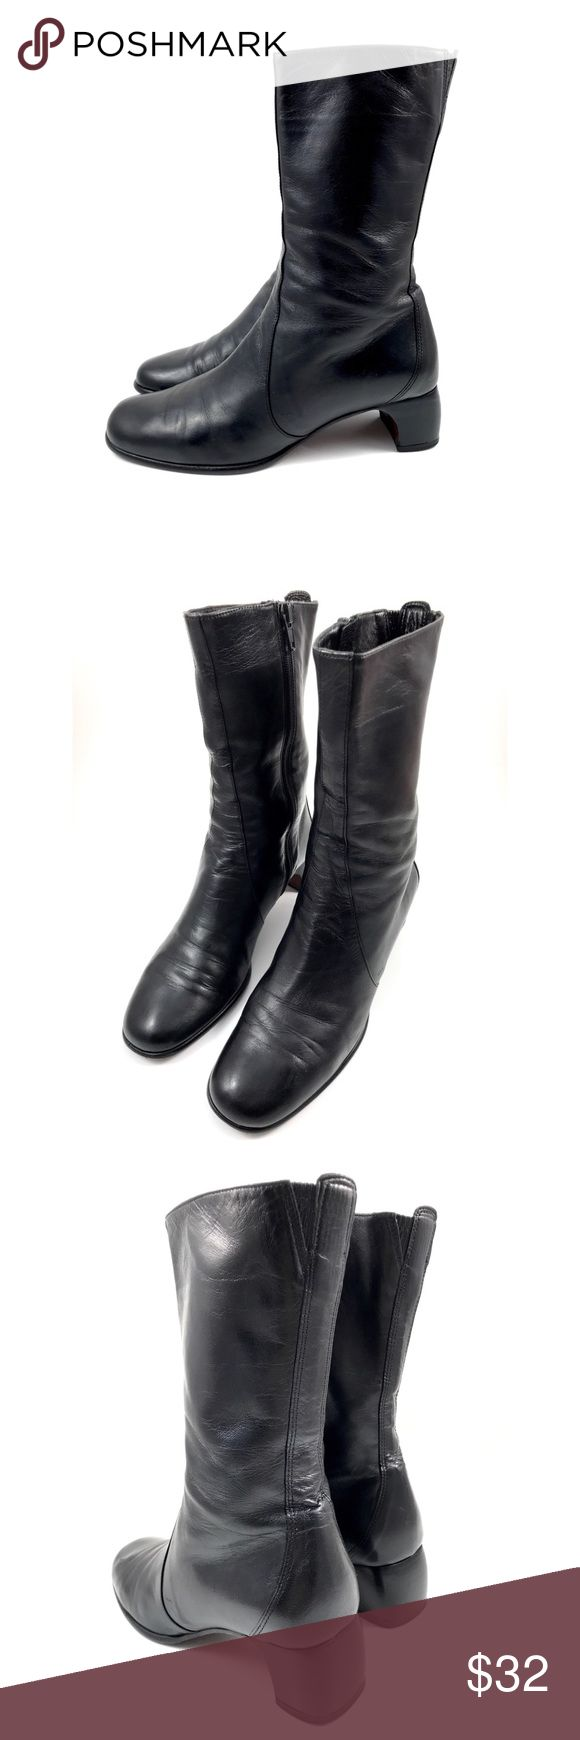 """VTG COLE HAAN City Italian black leather boots 7 B Vintage COLE HAAN black genuine leather combat boots. Made in Italy. Inner side full zipper. Tops have a bit of stretch attached to leather. Great condition, slight vintage wear on bottoms. Size 7 B. Heels measure 1 3/4"""". Cole Haan Shoes Combat & Moto Boots"""